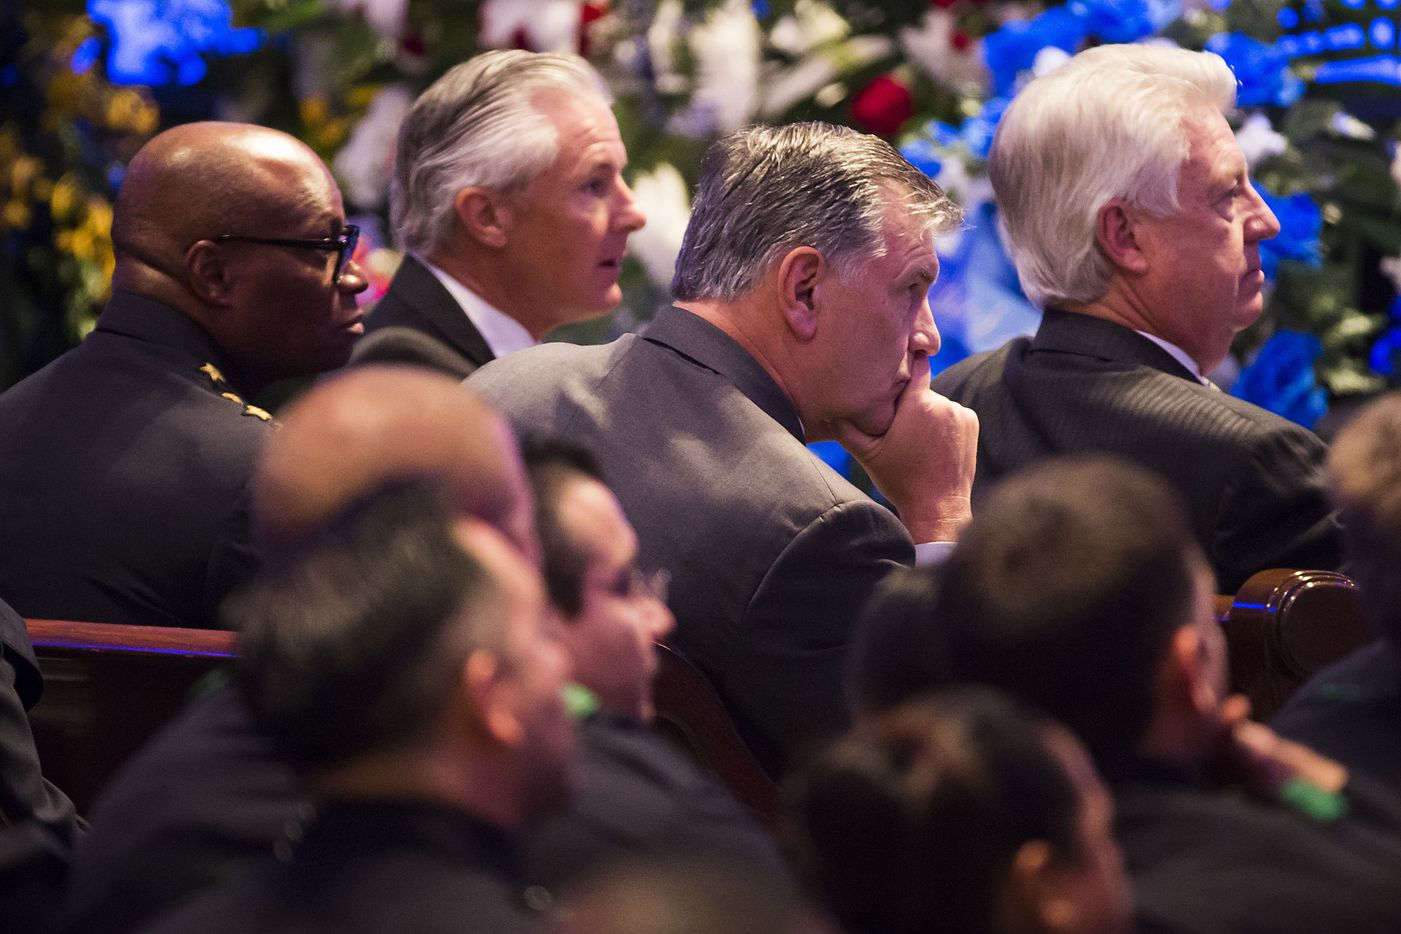 Dallas mayor Mike Rawlings (center) and police chief David Brown (left) attend funeral services for Dallas police Sr. Cpl. Lorne Ahrens at Prestonwood Baptist Churchon Wednesday, July 13, 2016, in Plano.